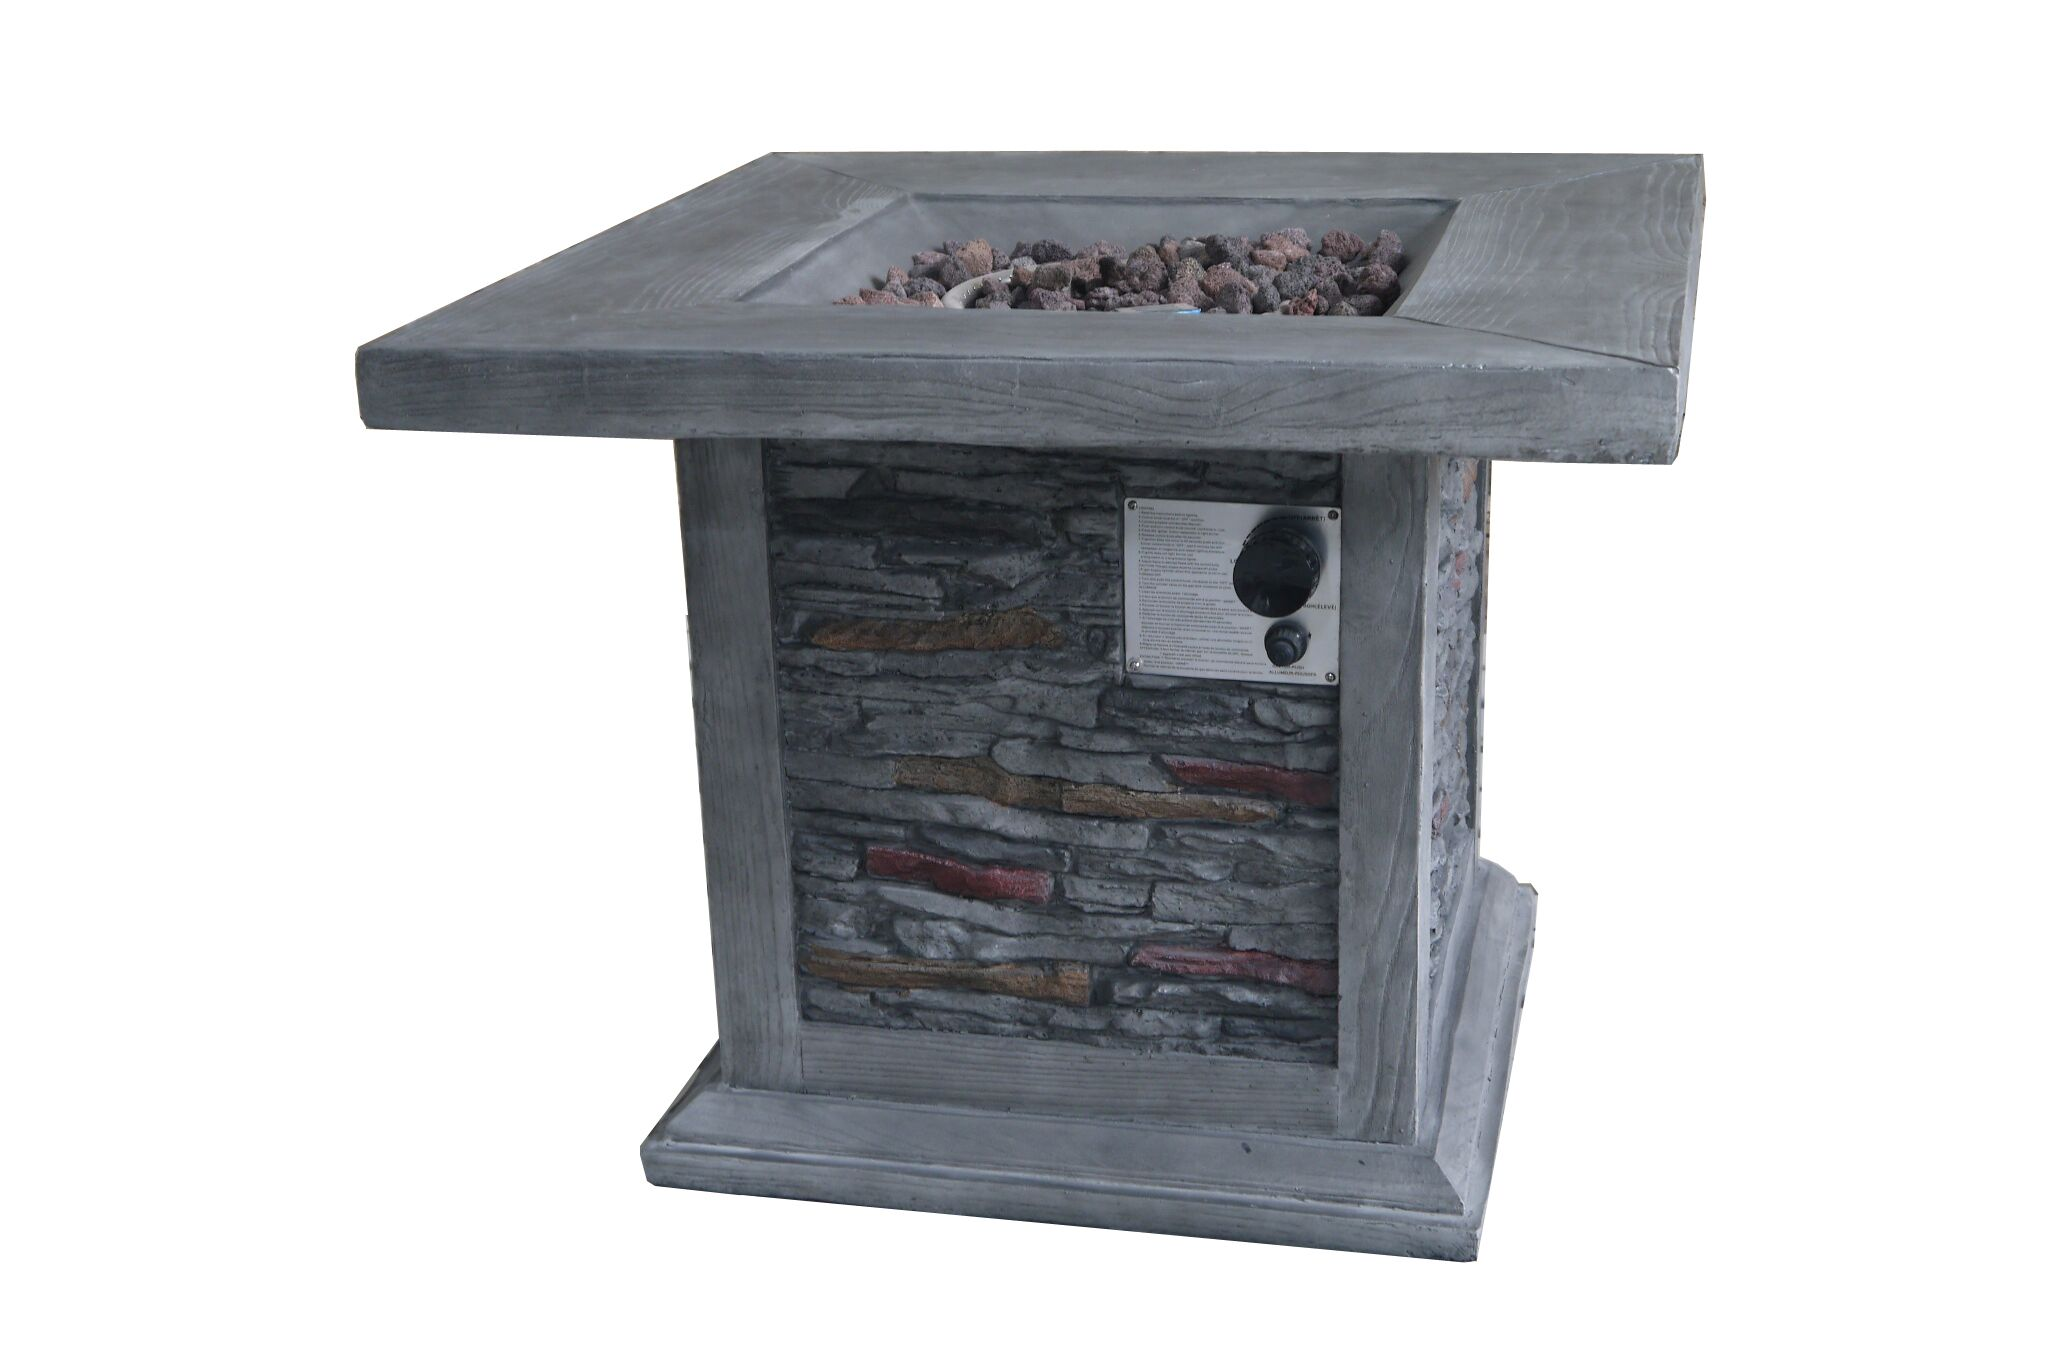 Wood Look Outdoor Gas Fire Pit with Stone Cladding and Lava Rocks,Gray